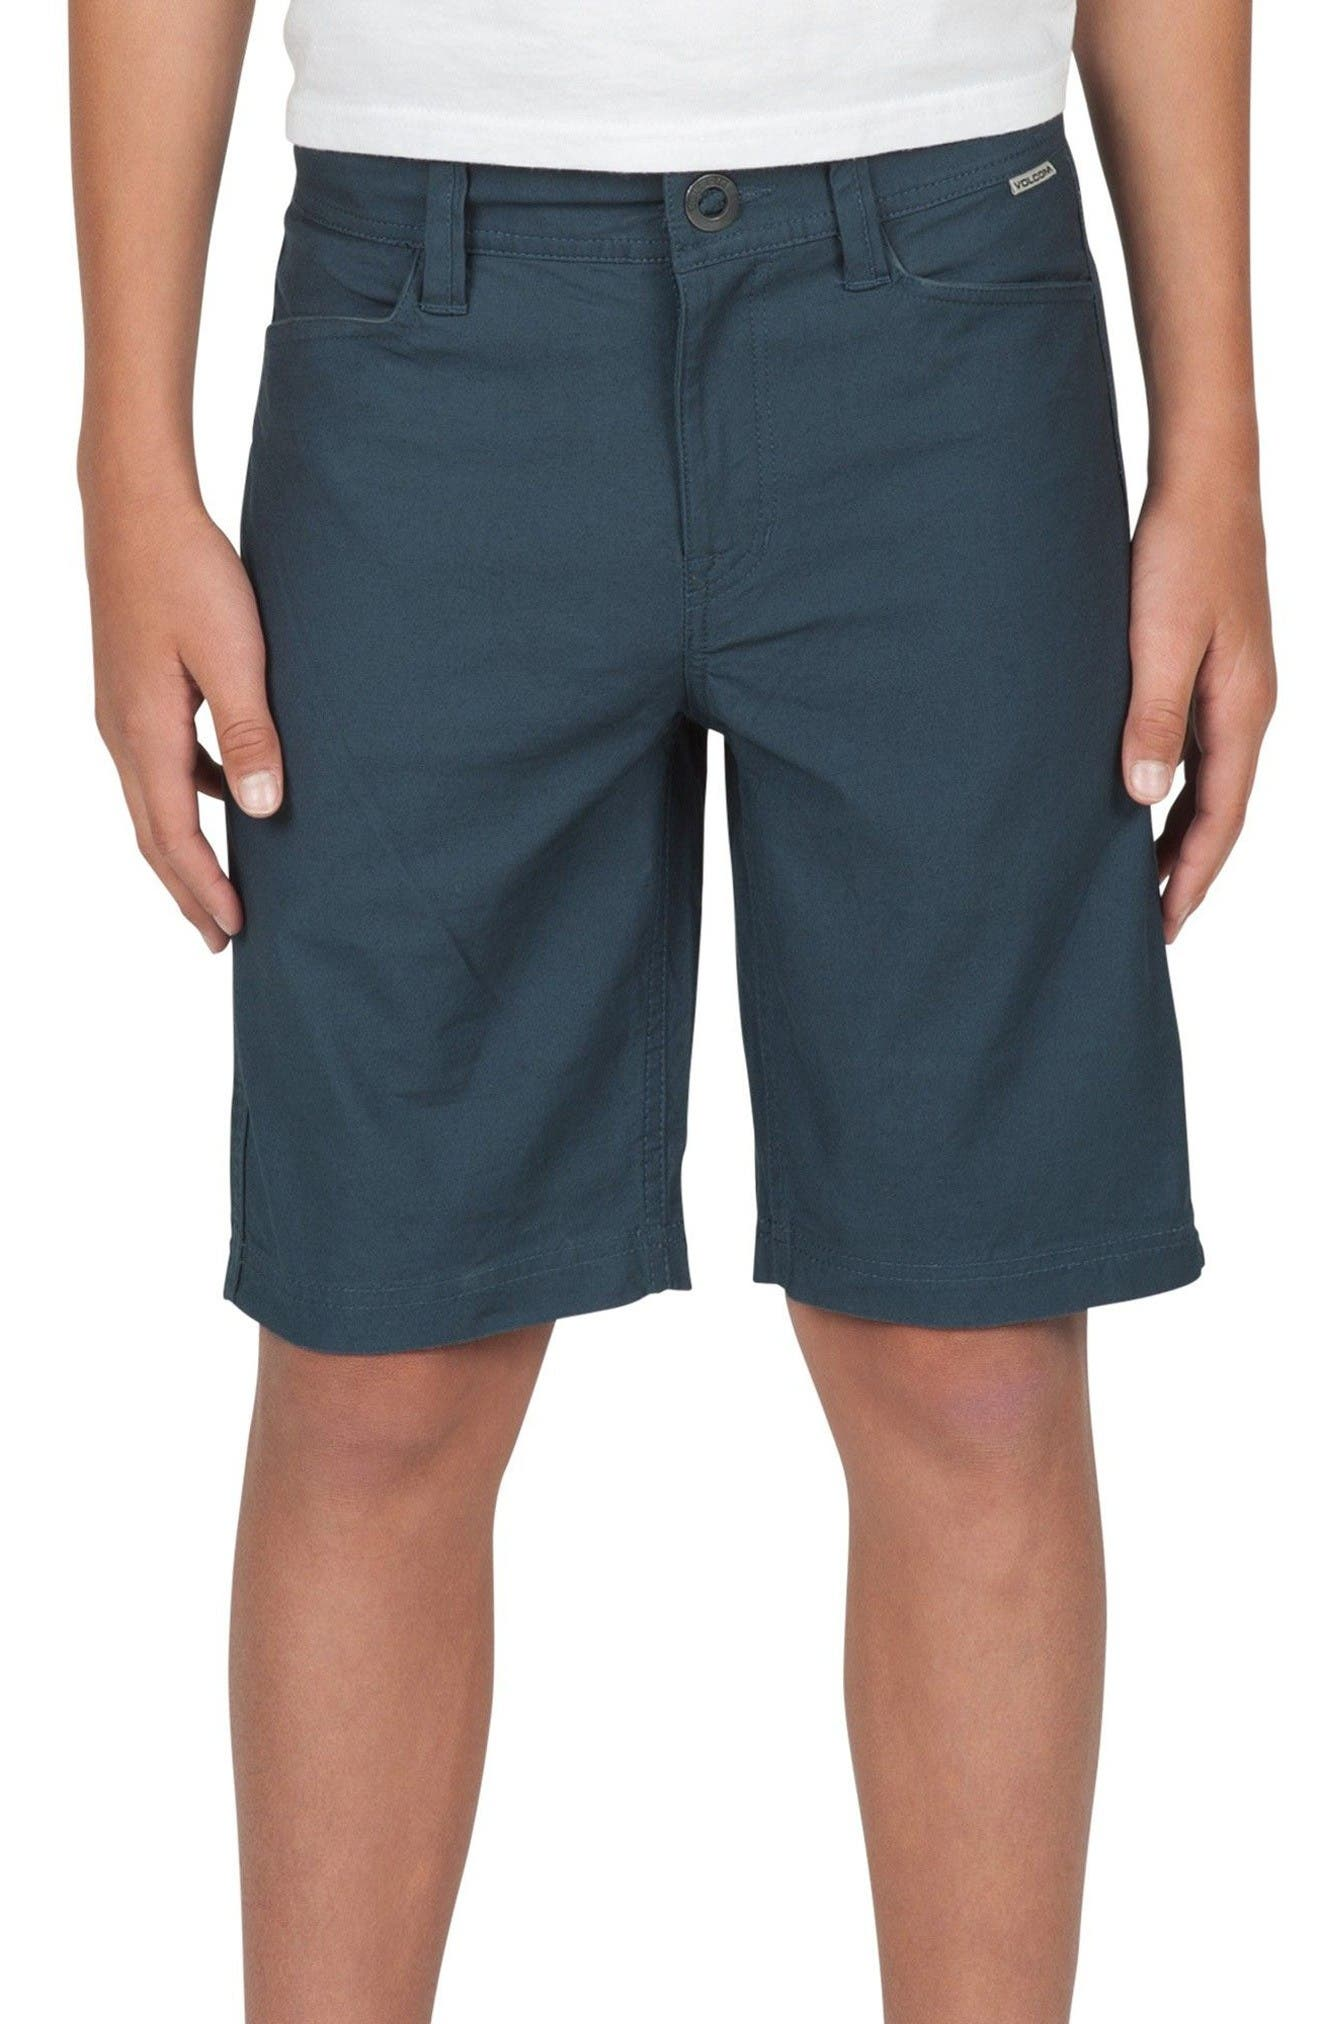 VSM Gritter Chino Shorts,                         Main,                         color, Airforce Blue